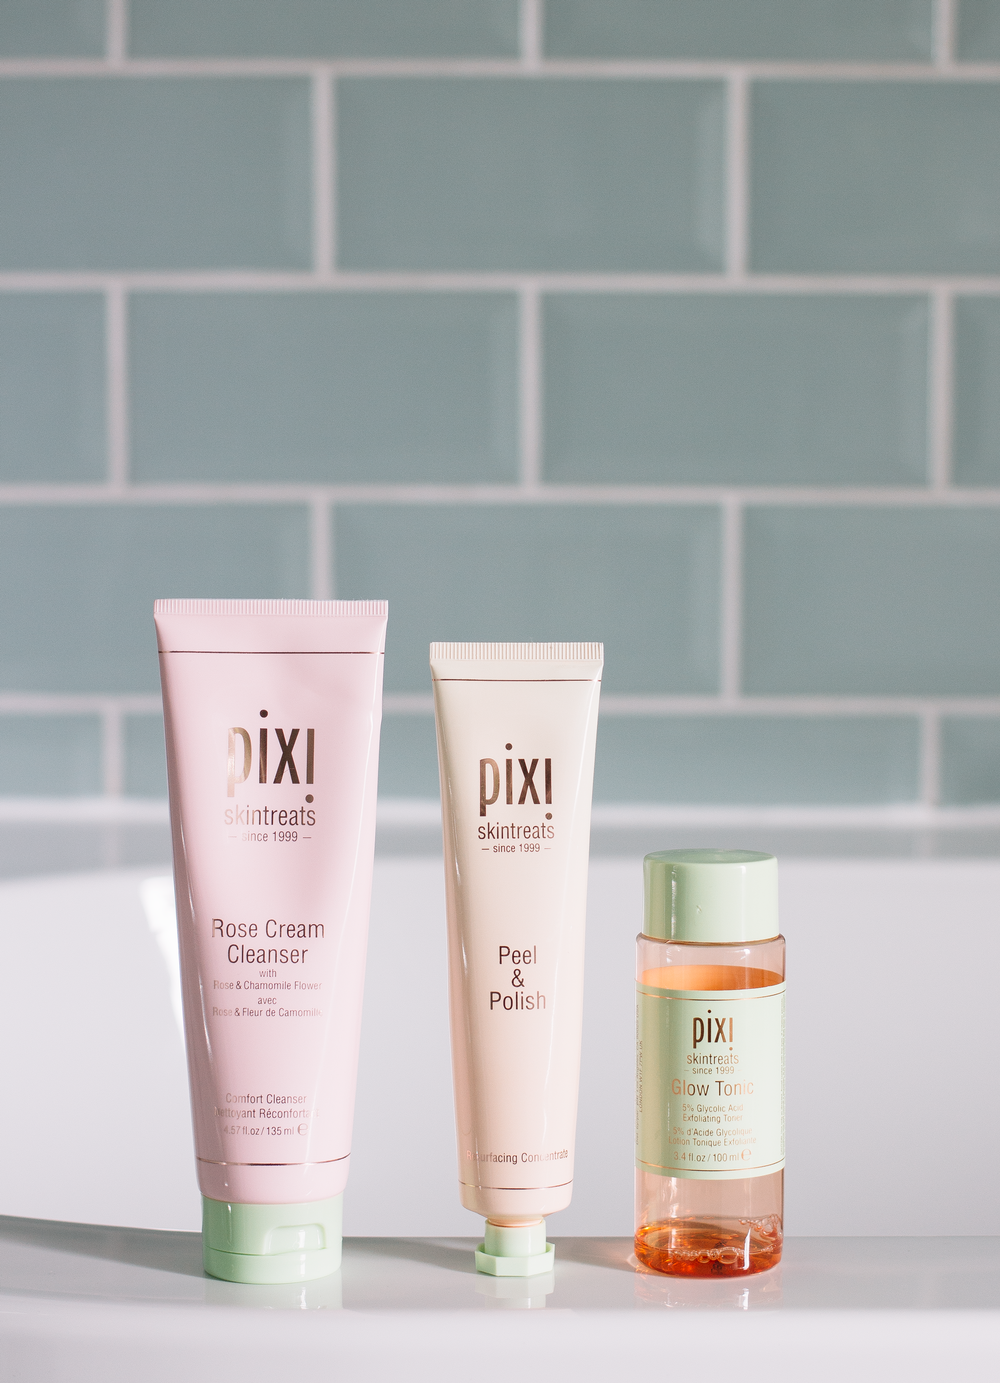 pixi - The Pixi Glow Tonic (gifted) is a product that I've used maybe 15 or so bottles of? We're talking a serious long term love affair here. It was one of the first glycolic toners I used, adored and it's still one I use to this day. When I first starting using Pixi products there wasn't a huge amount available but over the past 6 or so years the line has grown and now there are so many gems on offer. It's incredibly rare that this happens but I don't think there is a product that I've not got on with that I've tried. Everything from cleansers, toners, treatments, and masks are all brilliant and again I find Pixi sits at a really comfortable price point for me. And Pixi not only do brilliant skincare but they also do makeup too, granted I'm not as crazy about their makeup as I am their skincare but they still have some beautiful items on offer. Right now I'm seriously enjoying their Glow Tonic, obviously but I'm also using the Rose Cream Cleanser (gifted). A new product in my rotation and one I'm seriously enjoying. This works well in the AM for a quick refresh as well as a second cleanse in the evening to remove any makeup remnants as well as hydrating and comforting the complexion. And if you're not a huge fan of rose then don't worry because this isn't overly scented, of course, it smells of roses but it's the good kind, not the makes you want to vomit kind.